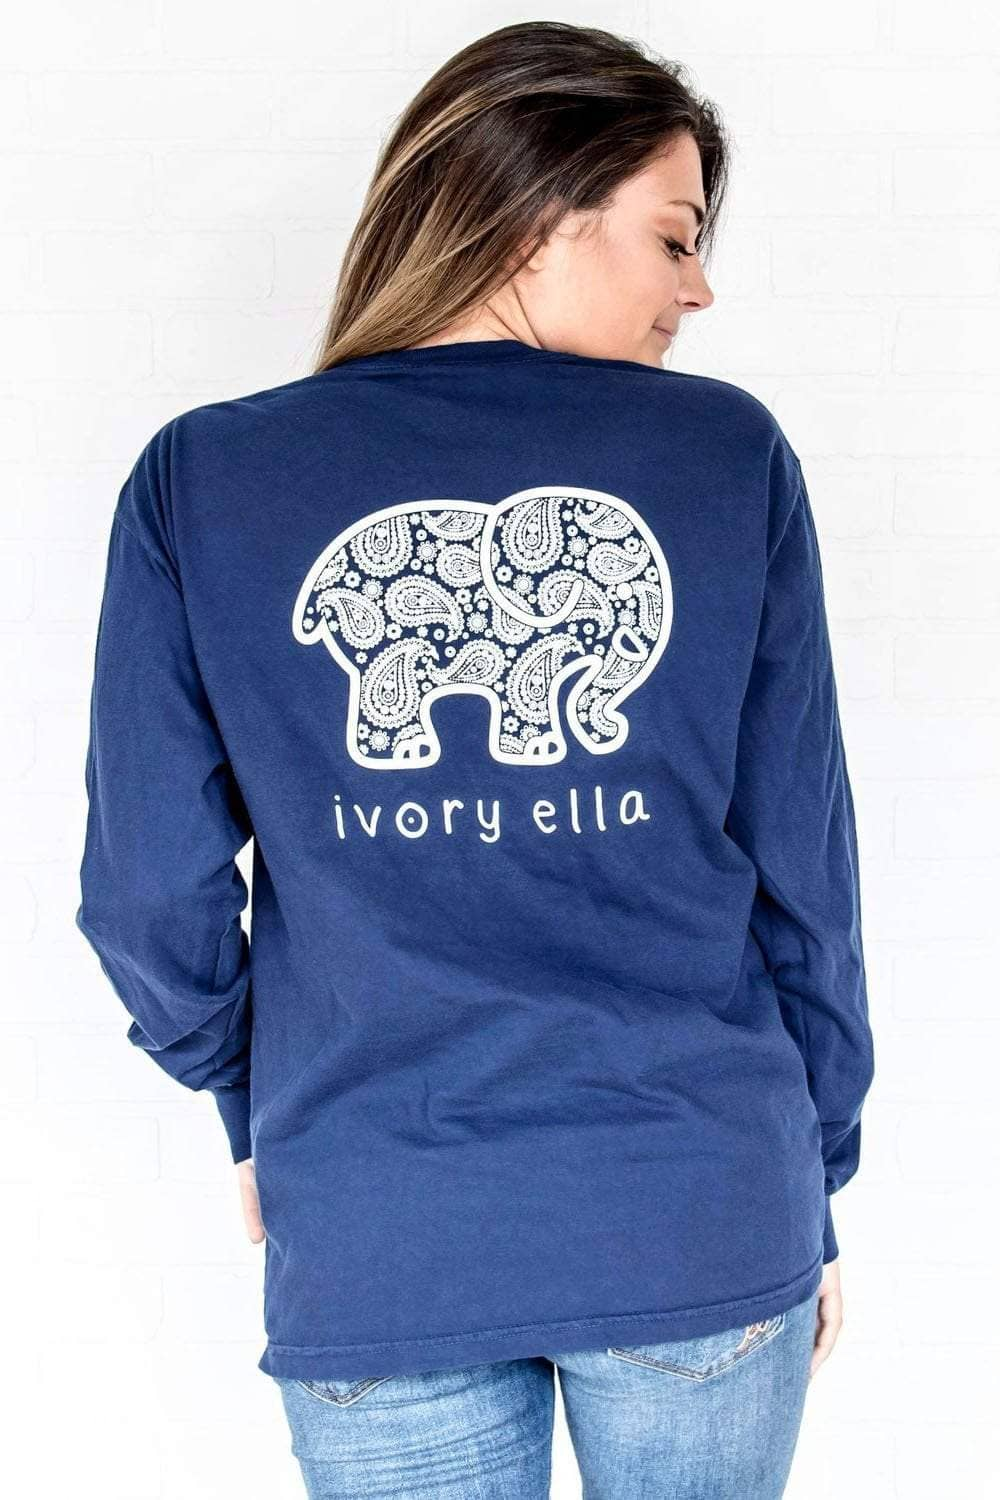 aeeb2058b Ivory Ella Women s Long Sleeve Shirts Navy   S Classic Fit Dark Navy  Inverse Paisley Tee